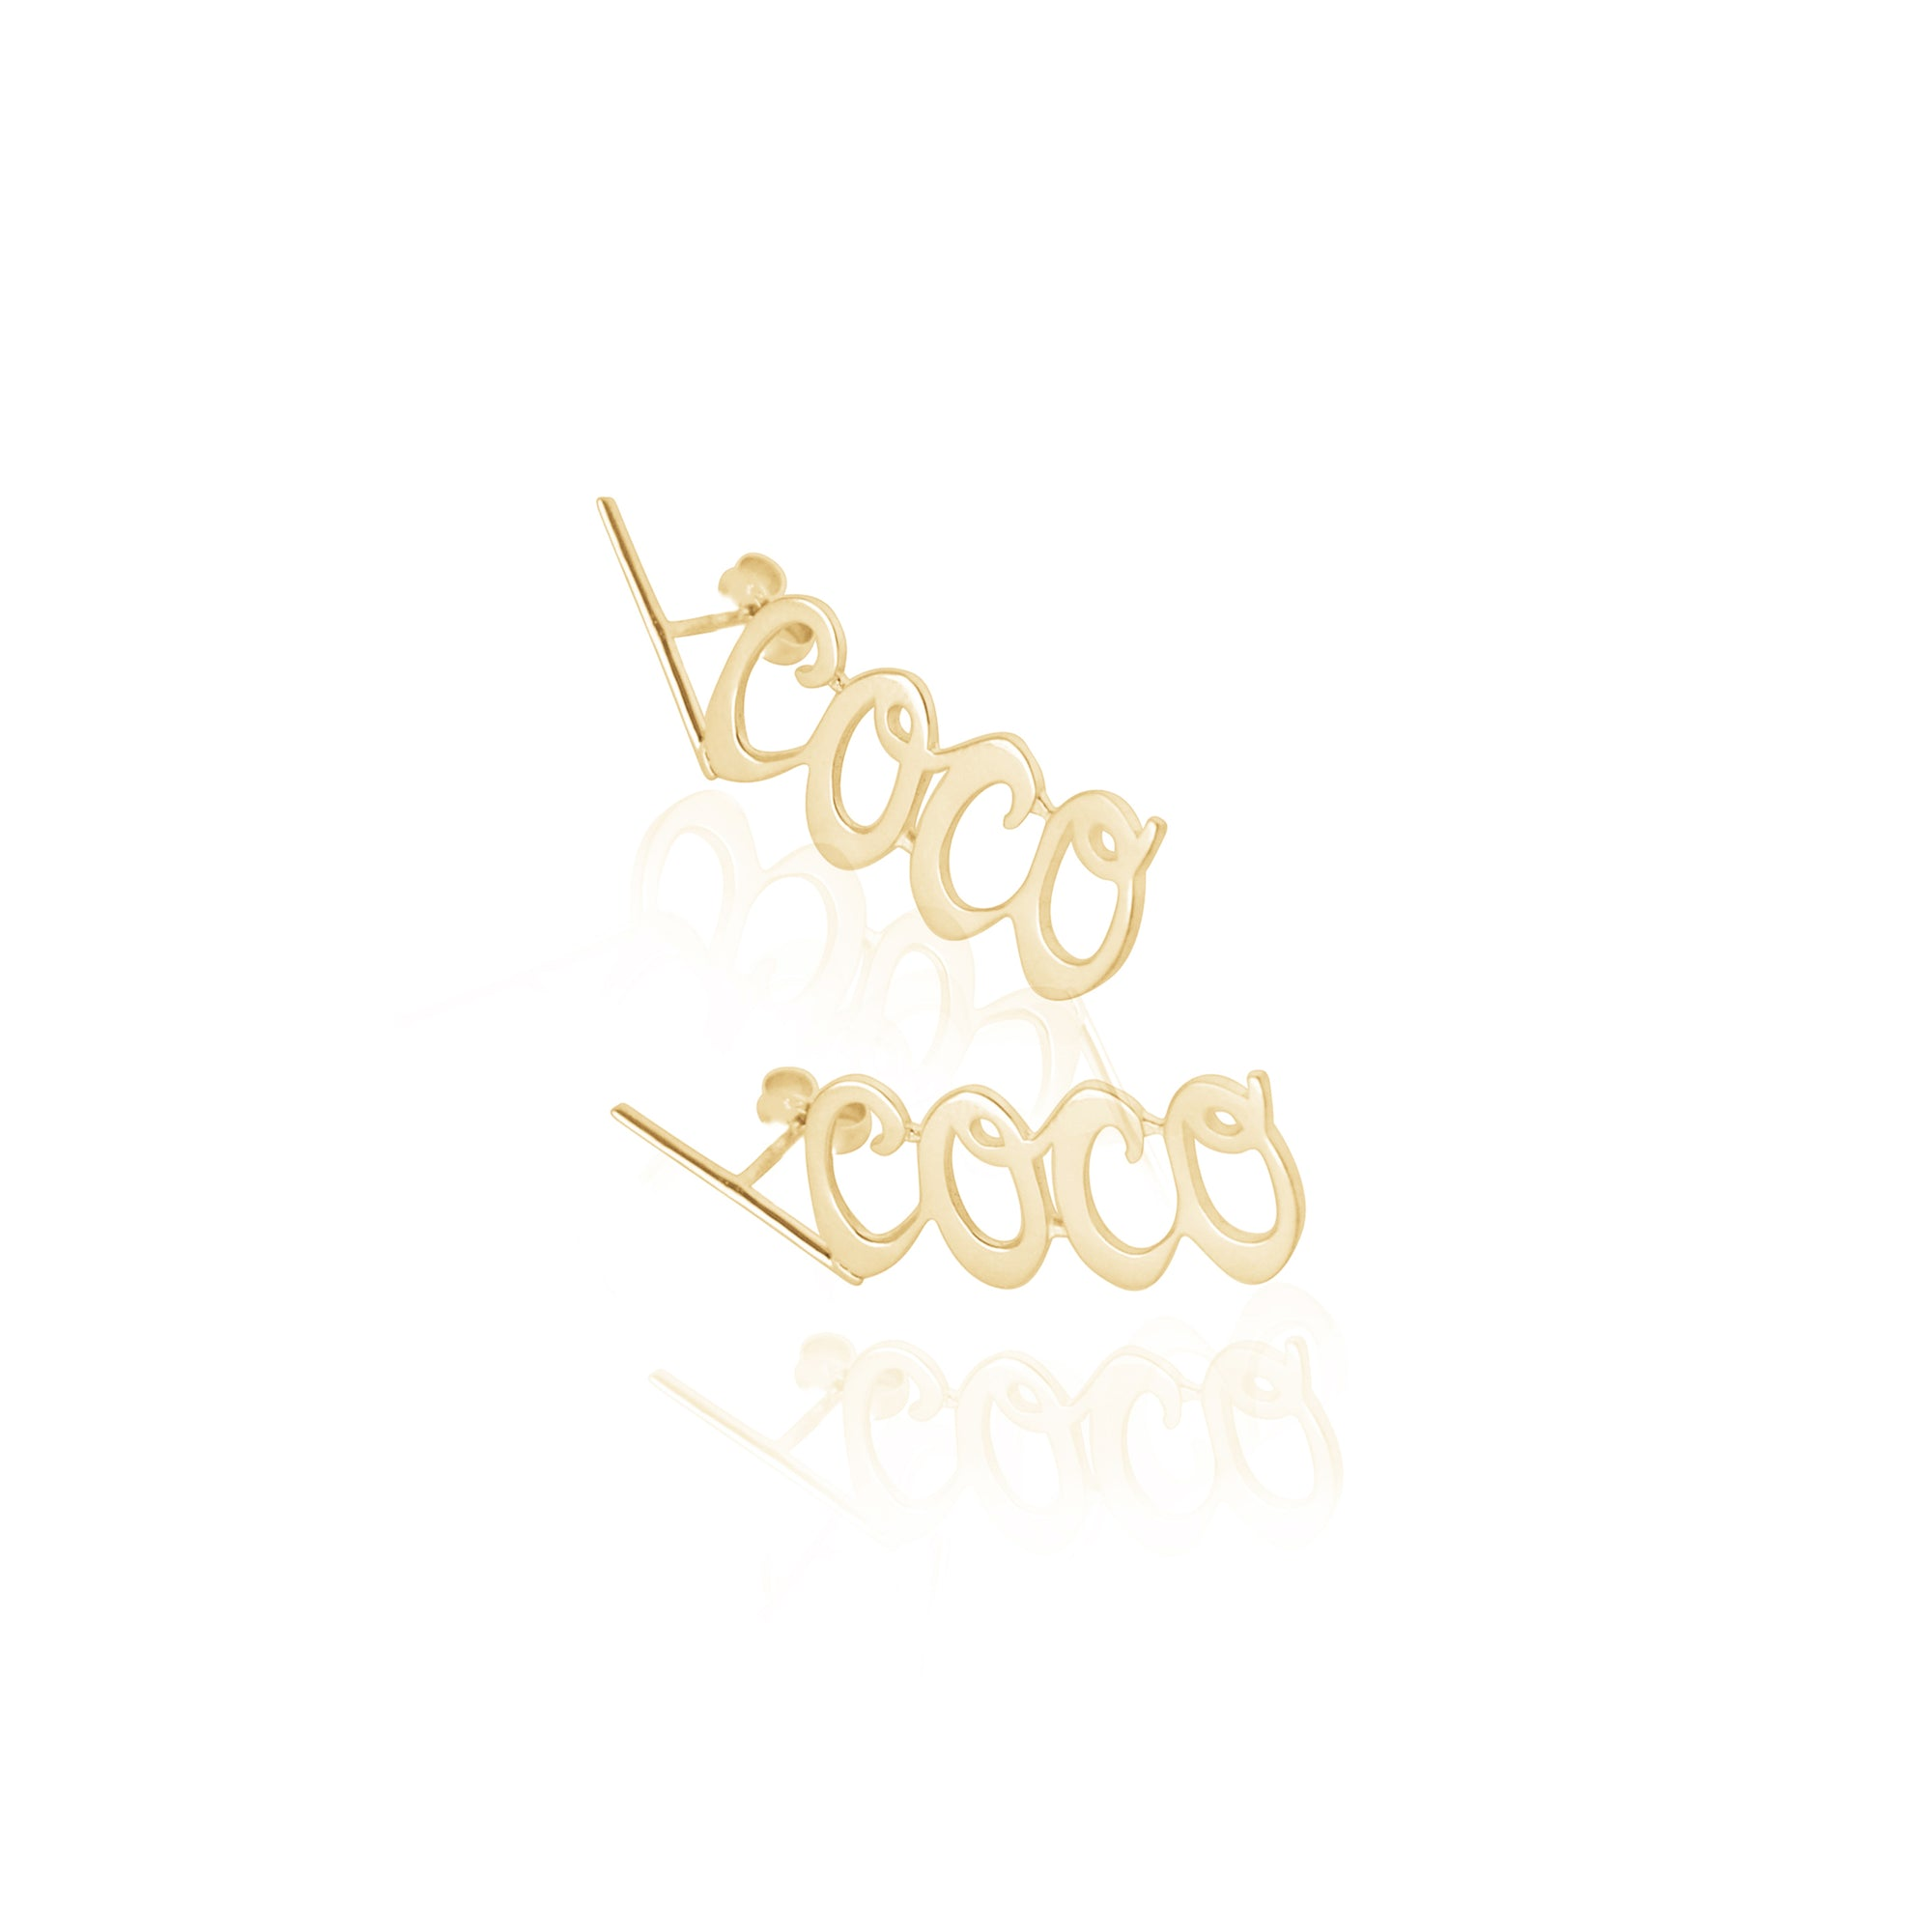 Coconut and Bliss x La Luna Rose COCO Earrings - GOLD